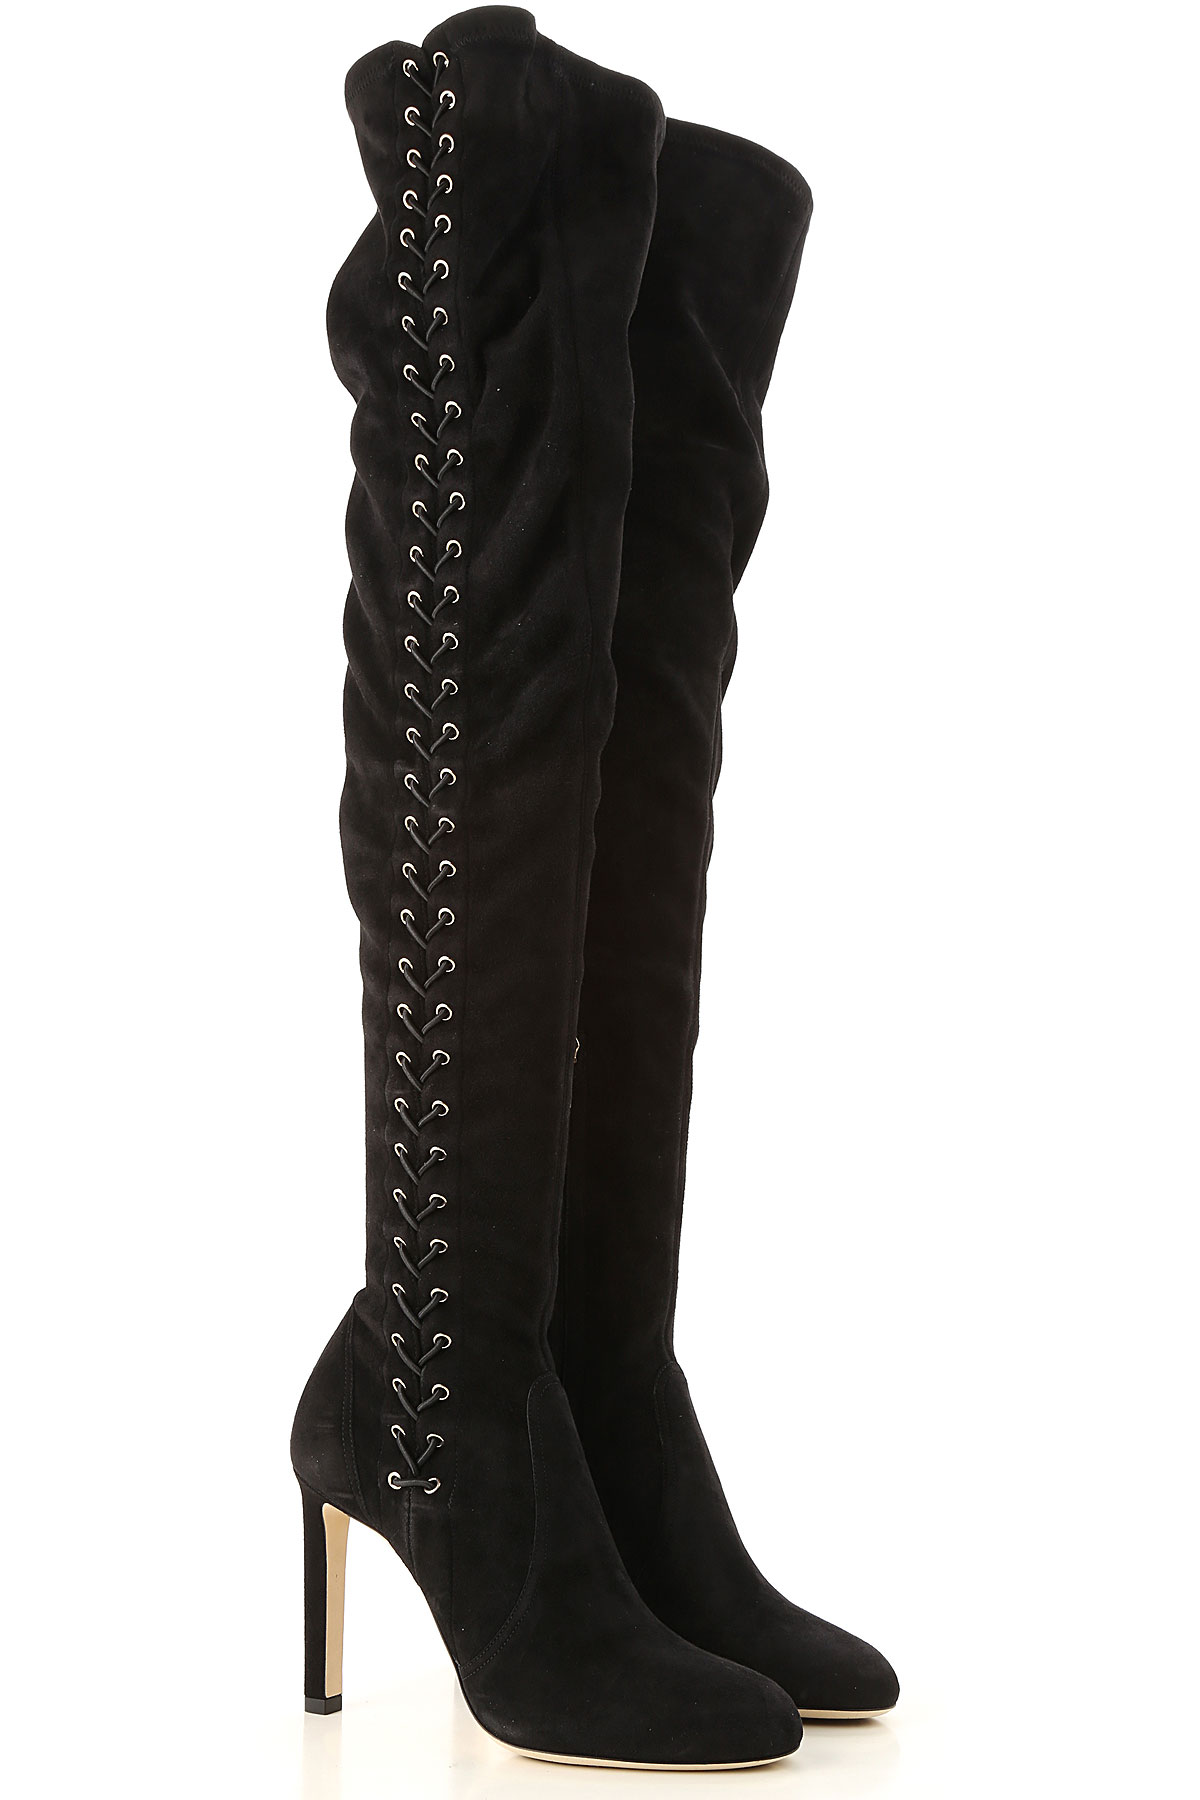 Jimmy Choo Boots for Women, Booties On Sale in Outlet, Black, suede, 2019, 7 8 8.5 9 9.5